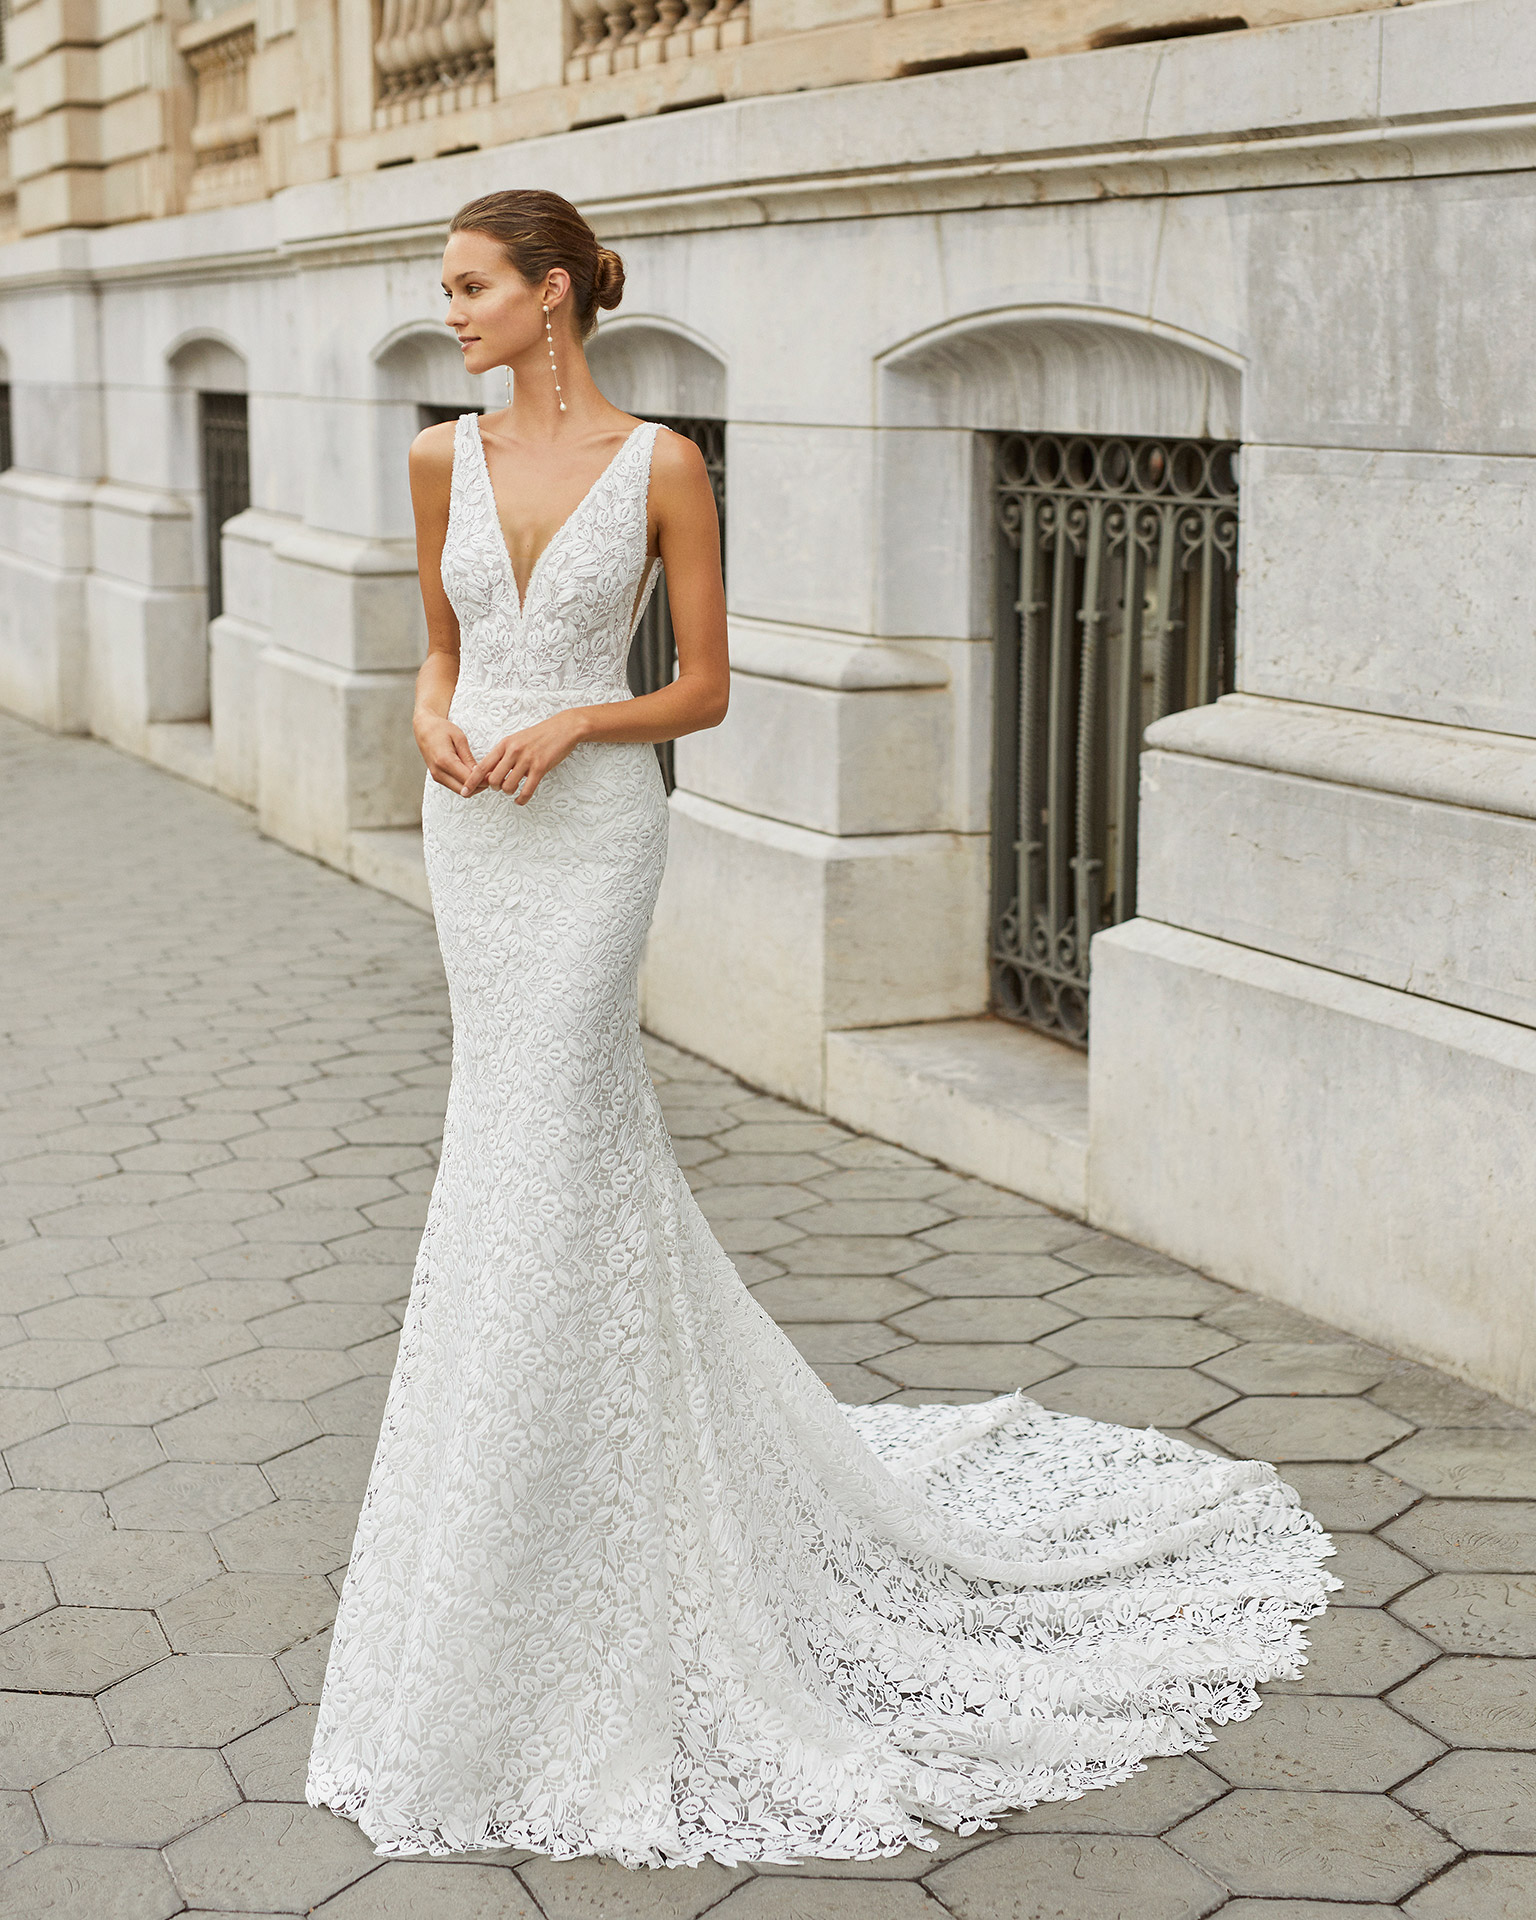 Mermaid wedding dress and petticoat, lace and beaded neckline, back and armholes. Deep-plunge neckline and V-back. 2022  Collection.